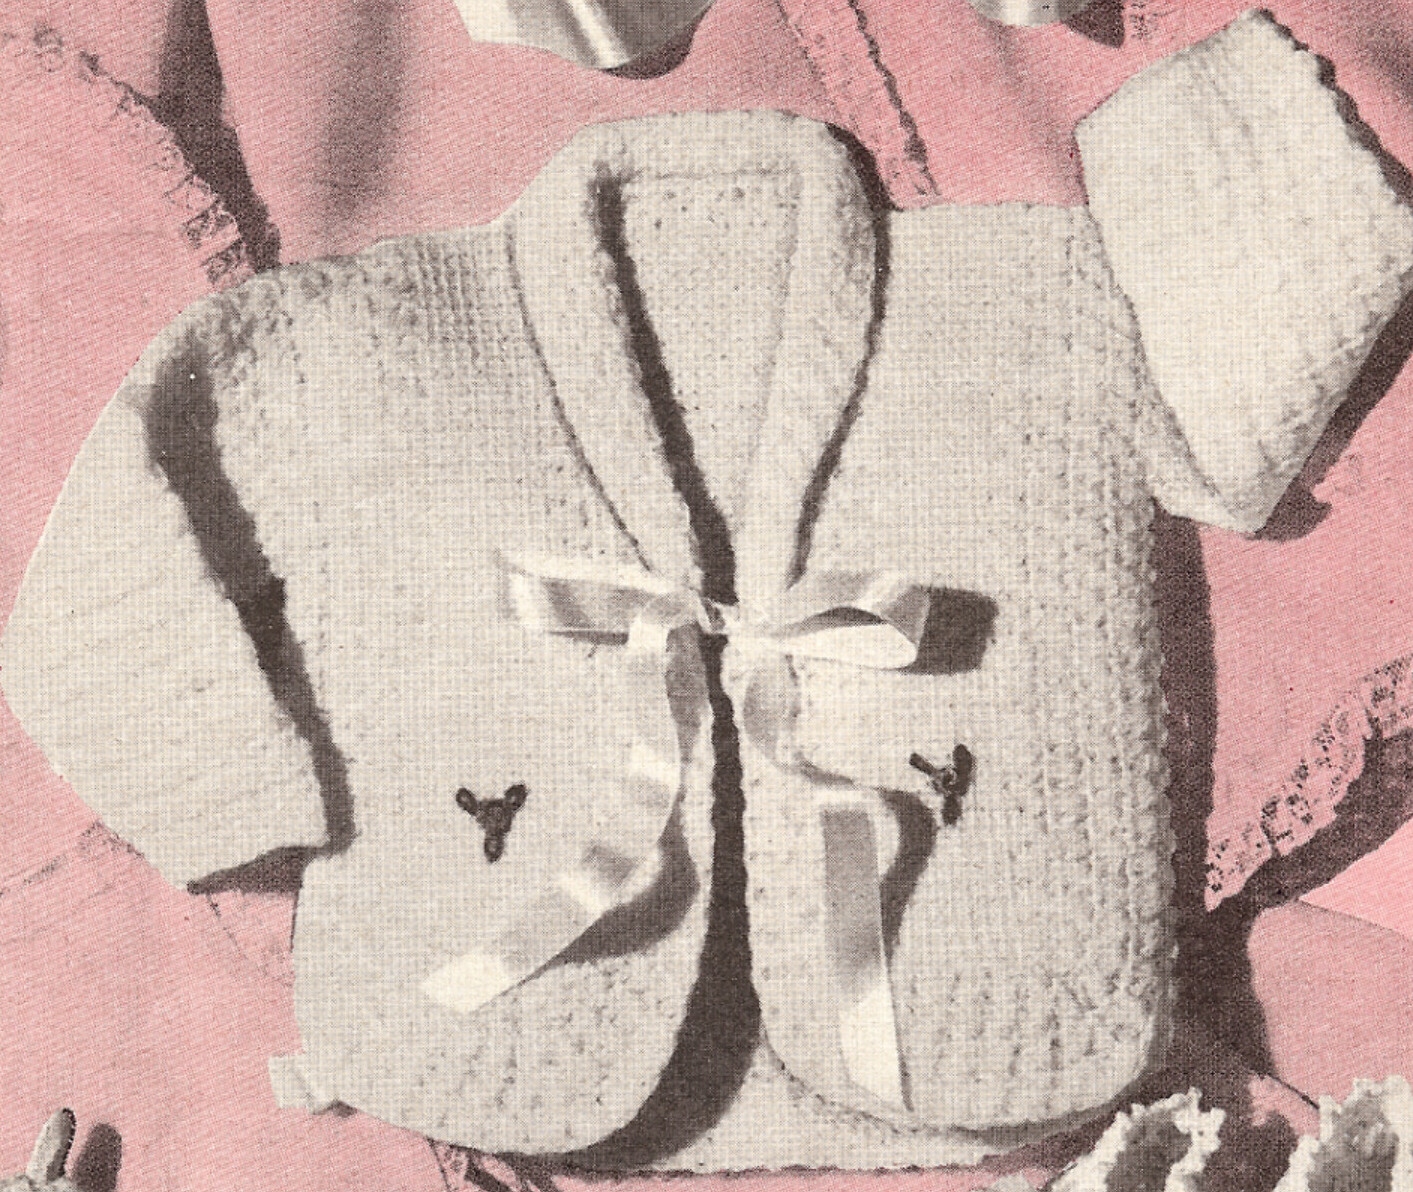 Vintage Crochet PATTERN to make: Infant Sweater (sacque) size 3 6 mos.